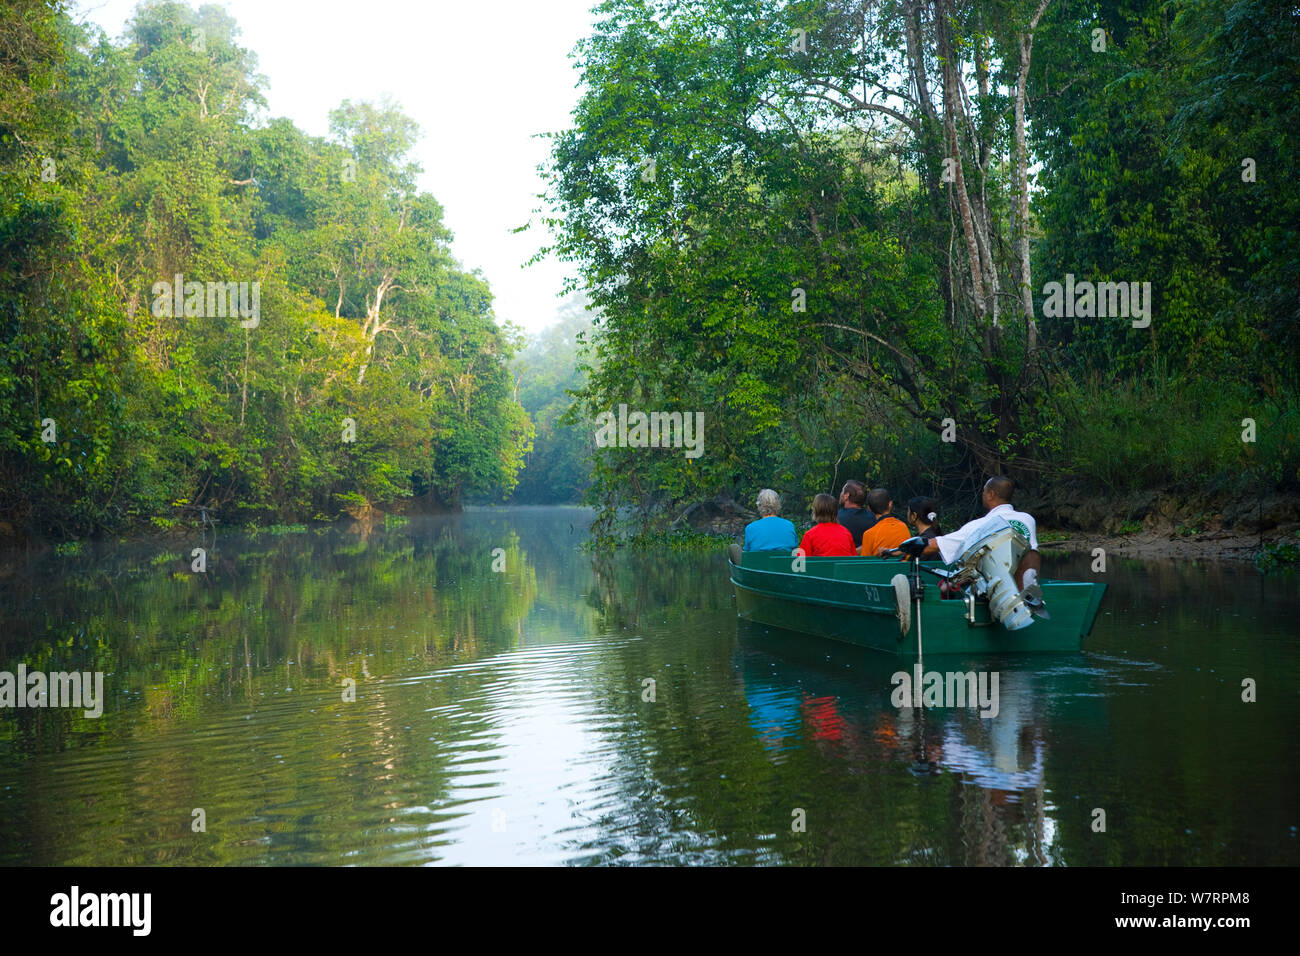 Toursists in a boat moving up the River Kinabatangan through lowland rainforest, Sabah, Malaysia, Borneo. Stock Photo